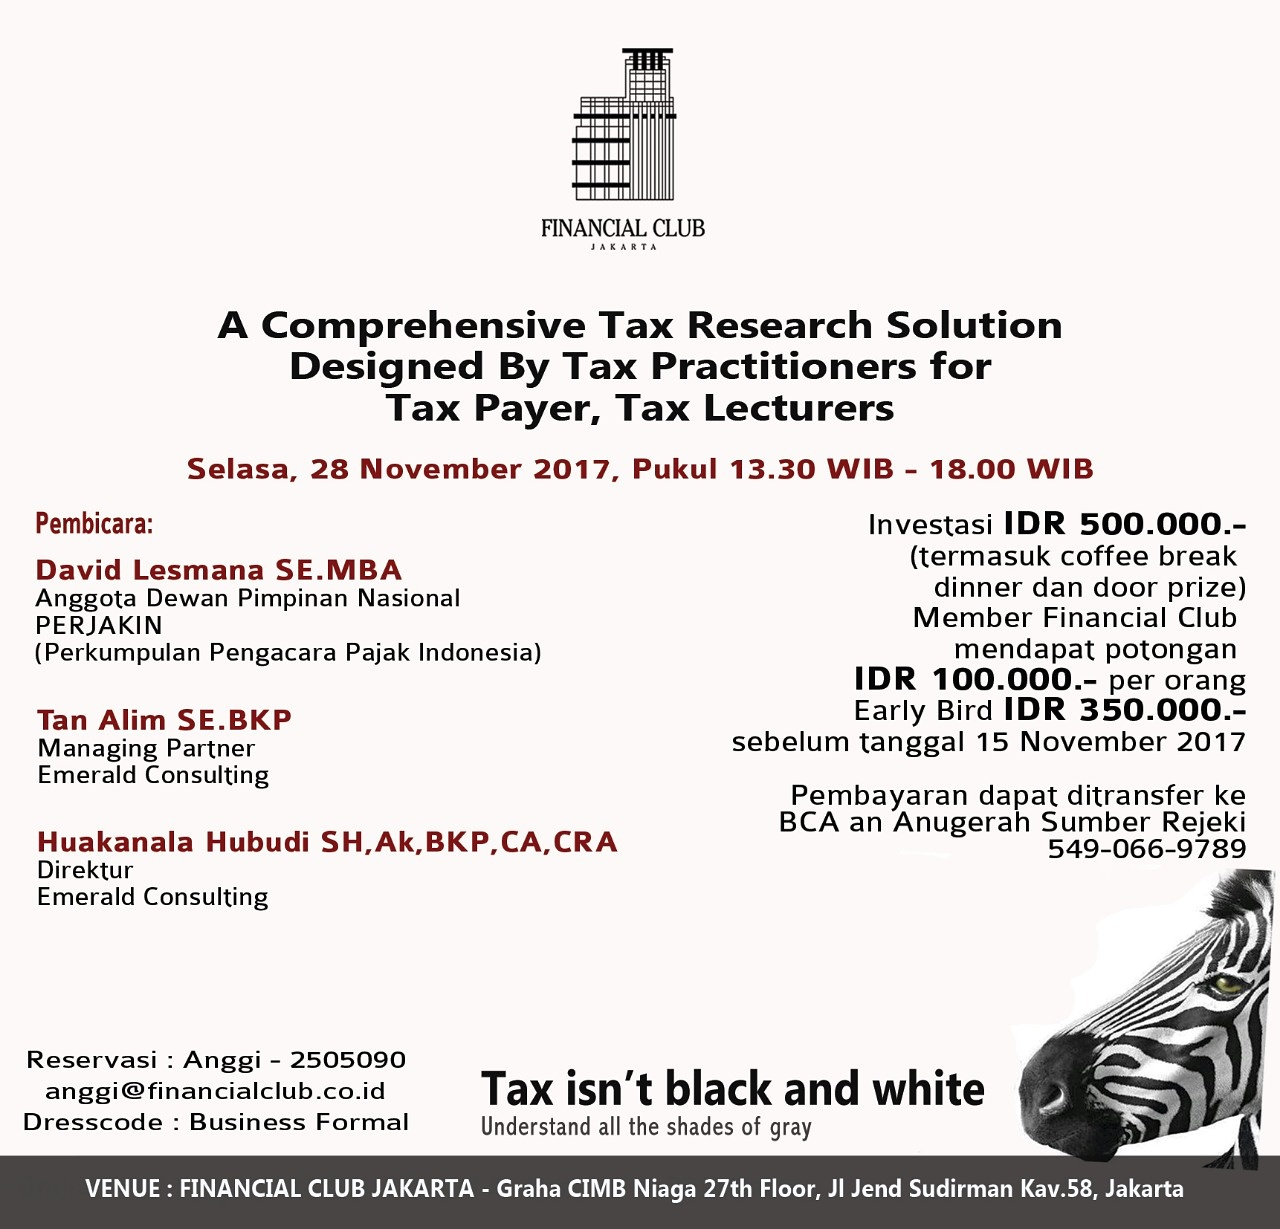 A Comprehensive Tax Research Solution Designed by Tax Practitioners for Tax Payer, Tax Lecturers